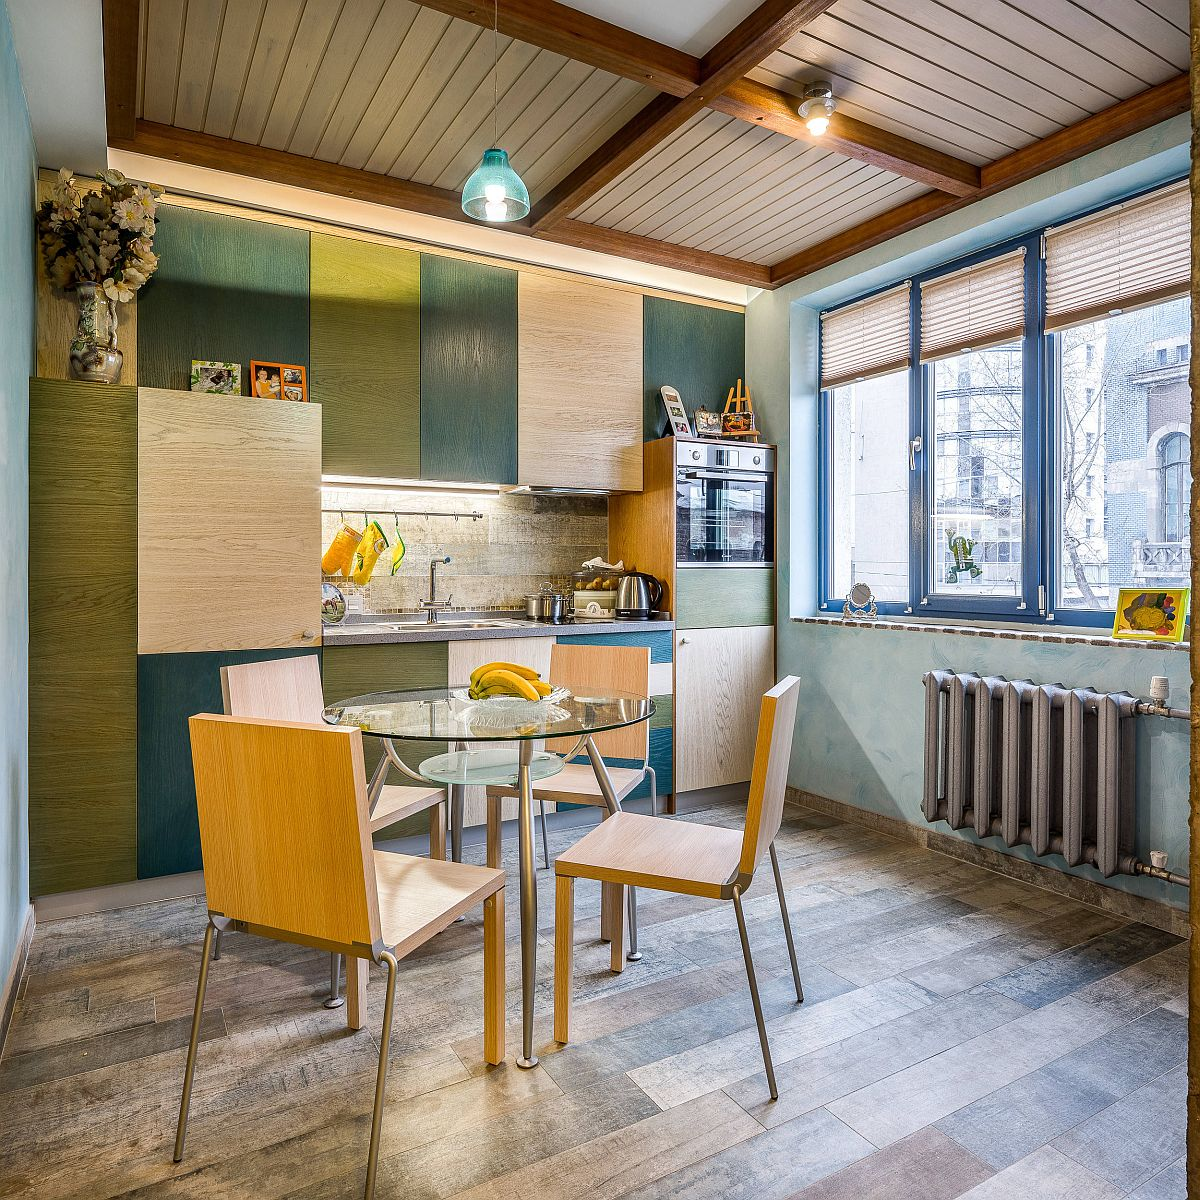 Shades-of-green-and-yellow-coupled-with-wood-inside-the-small-eclectic-kitchen-88258